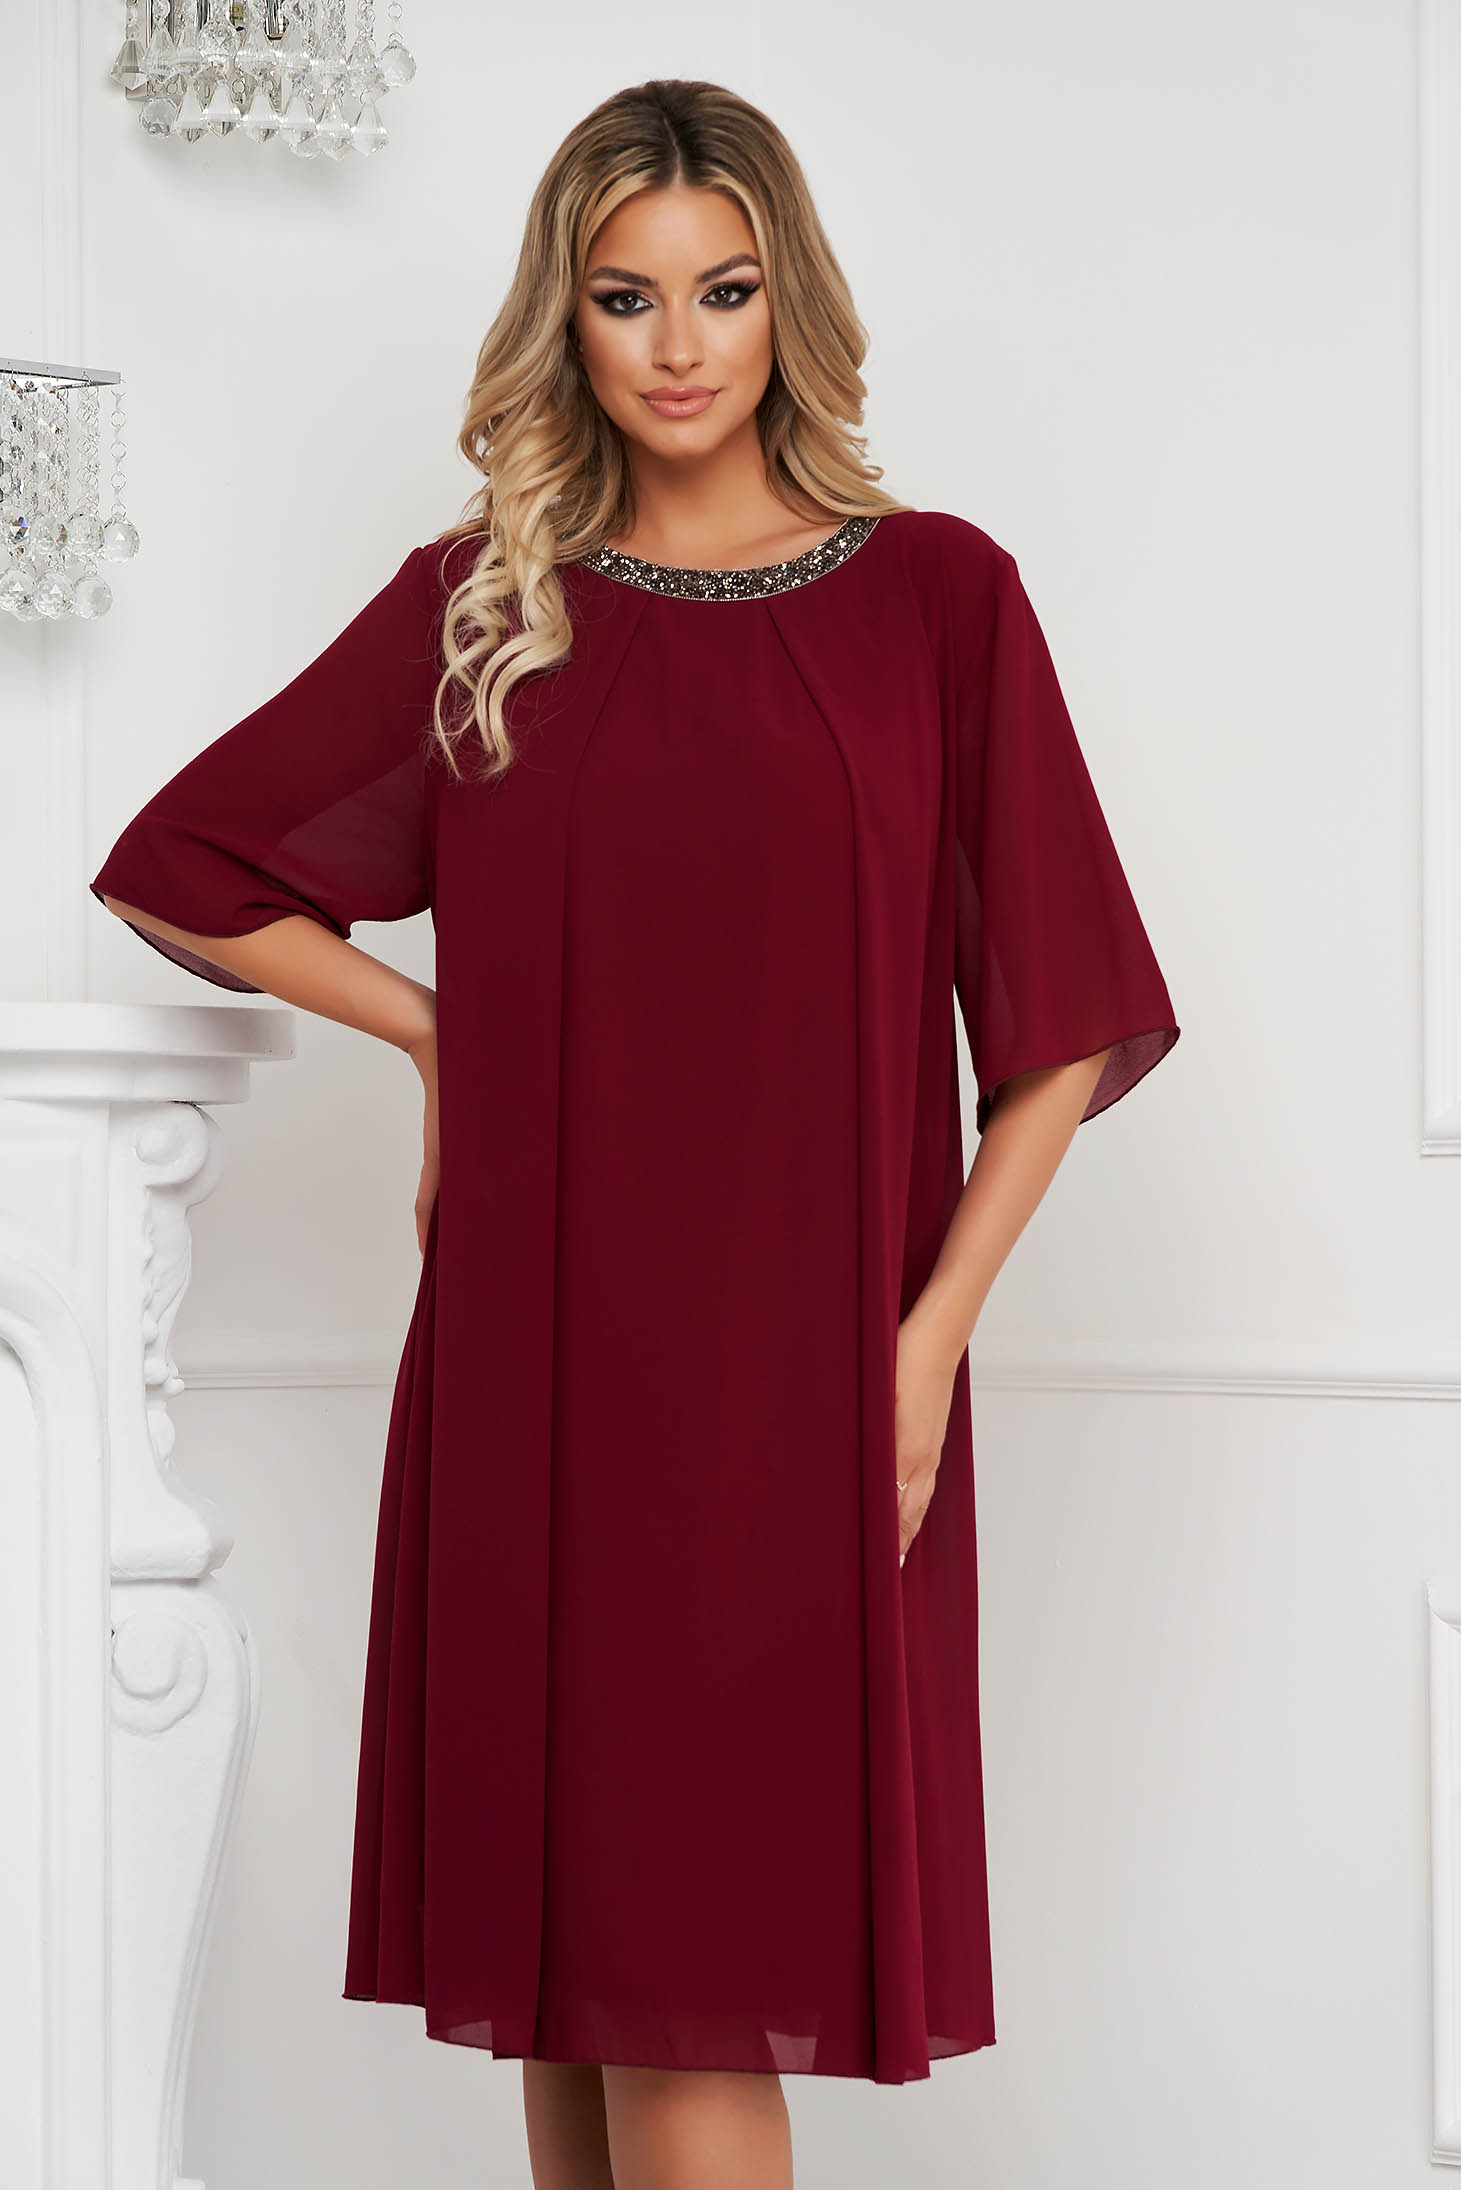 From veil fabric midi loose fit with crystal embellished details burgundy dress occasional